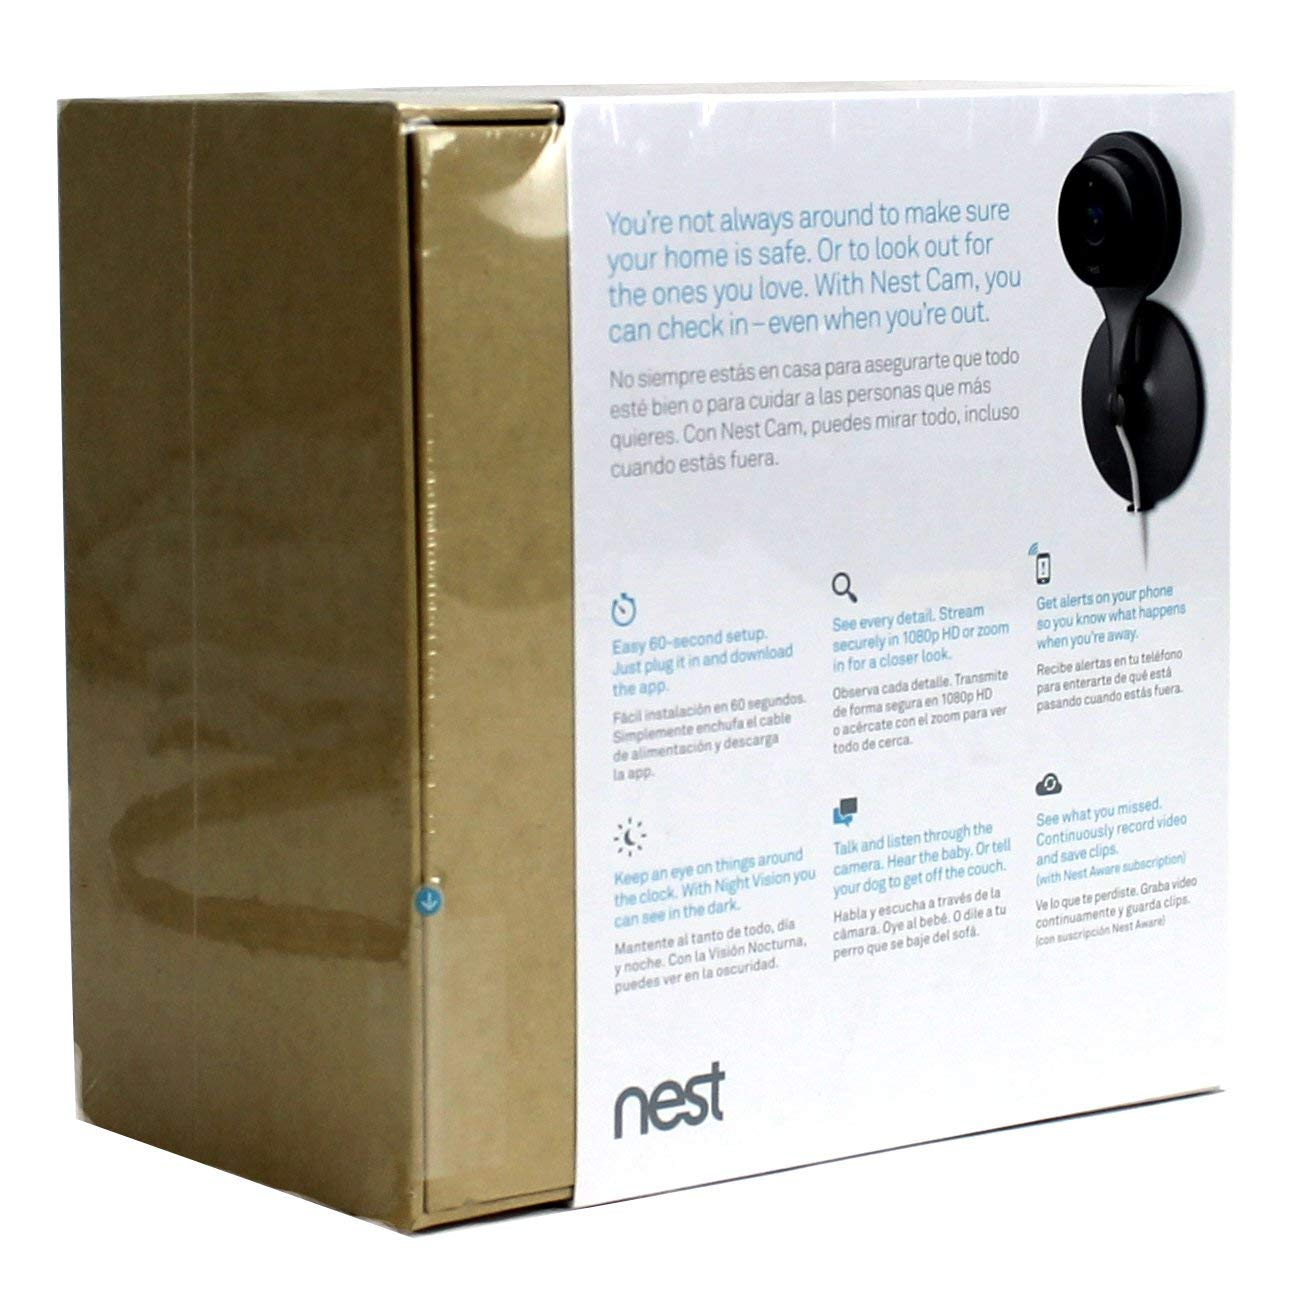 Amazon.com : Nest Cam Wi-Fi Wireless HD Indoor Video Monitoring Phone Surveillance Camera (6 Pack) : Camera & Photo